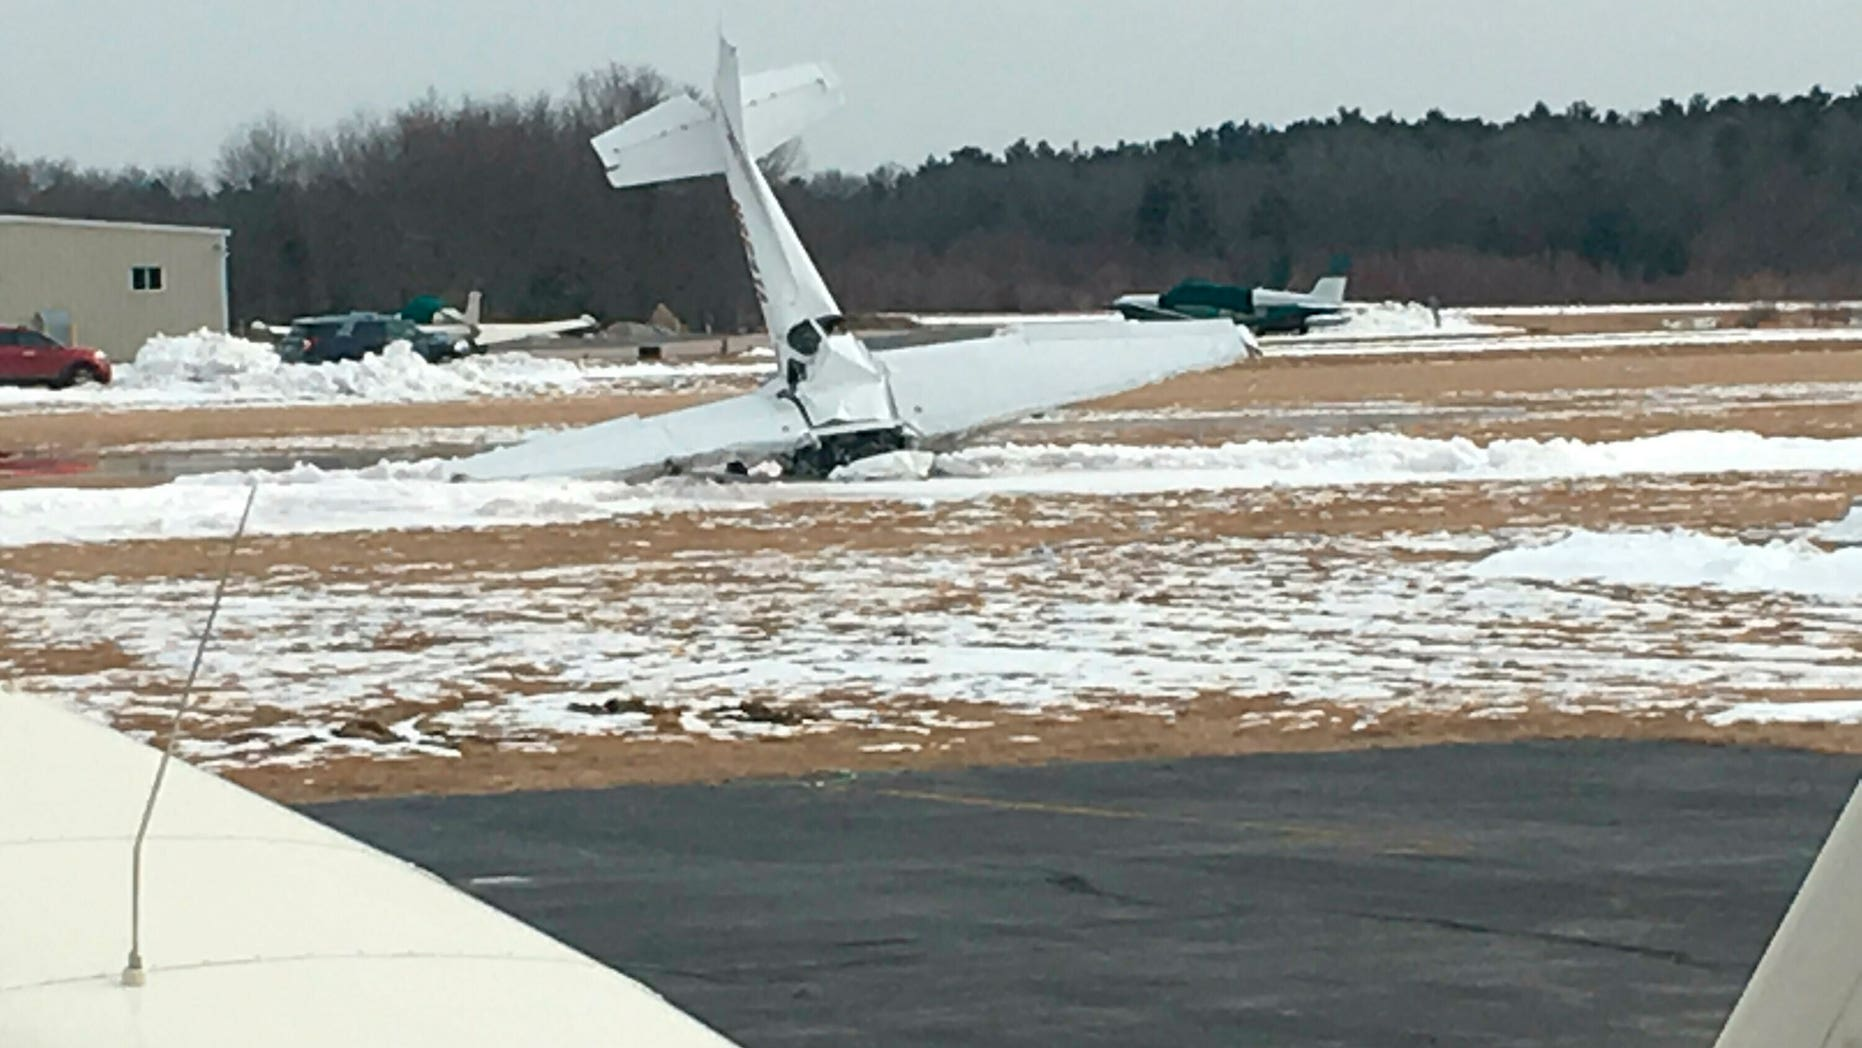 A small plane is seen resting on its nose following a crash and fire at Mansfield Municipal Airport in Mansfield, Mass., on Saturday. Massachusetts State Police confirmed that two people died in the crash, which occurred around 12:36 p.m.